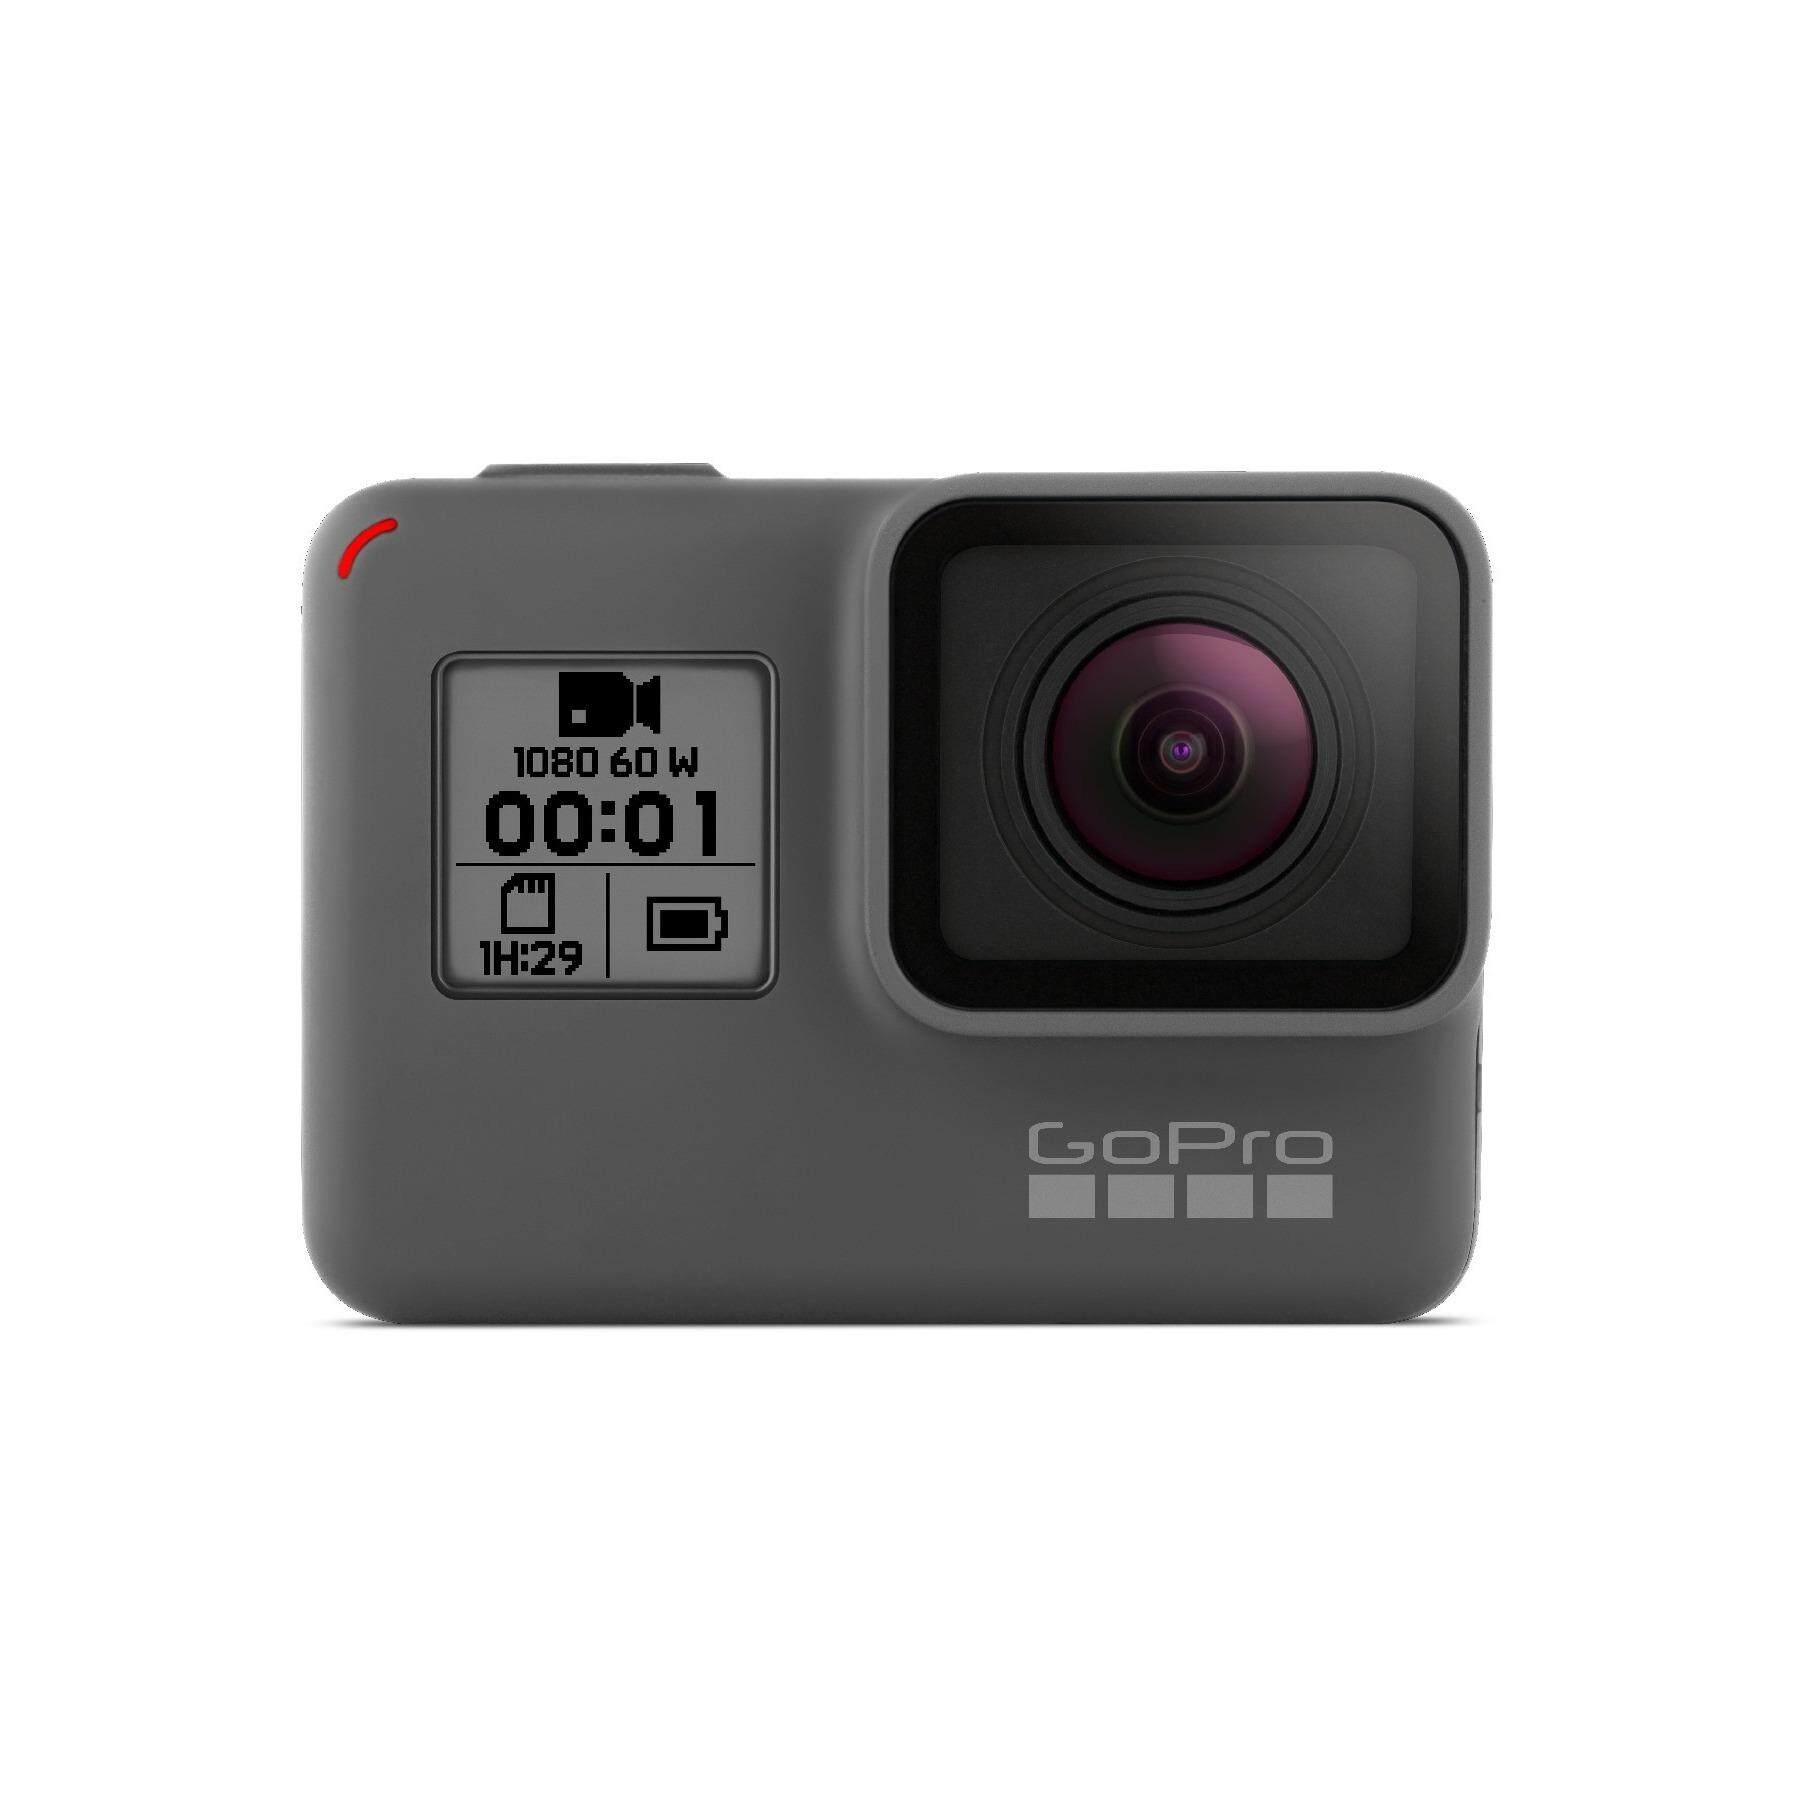 GoPro HERO 2018 Waterproof/ 10MP/ 1440p and 1080p video/Voice Control/Touch Display ประกันศูนย์ 1ปี โดย Mentagram